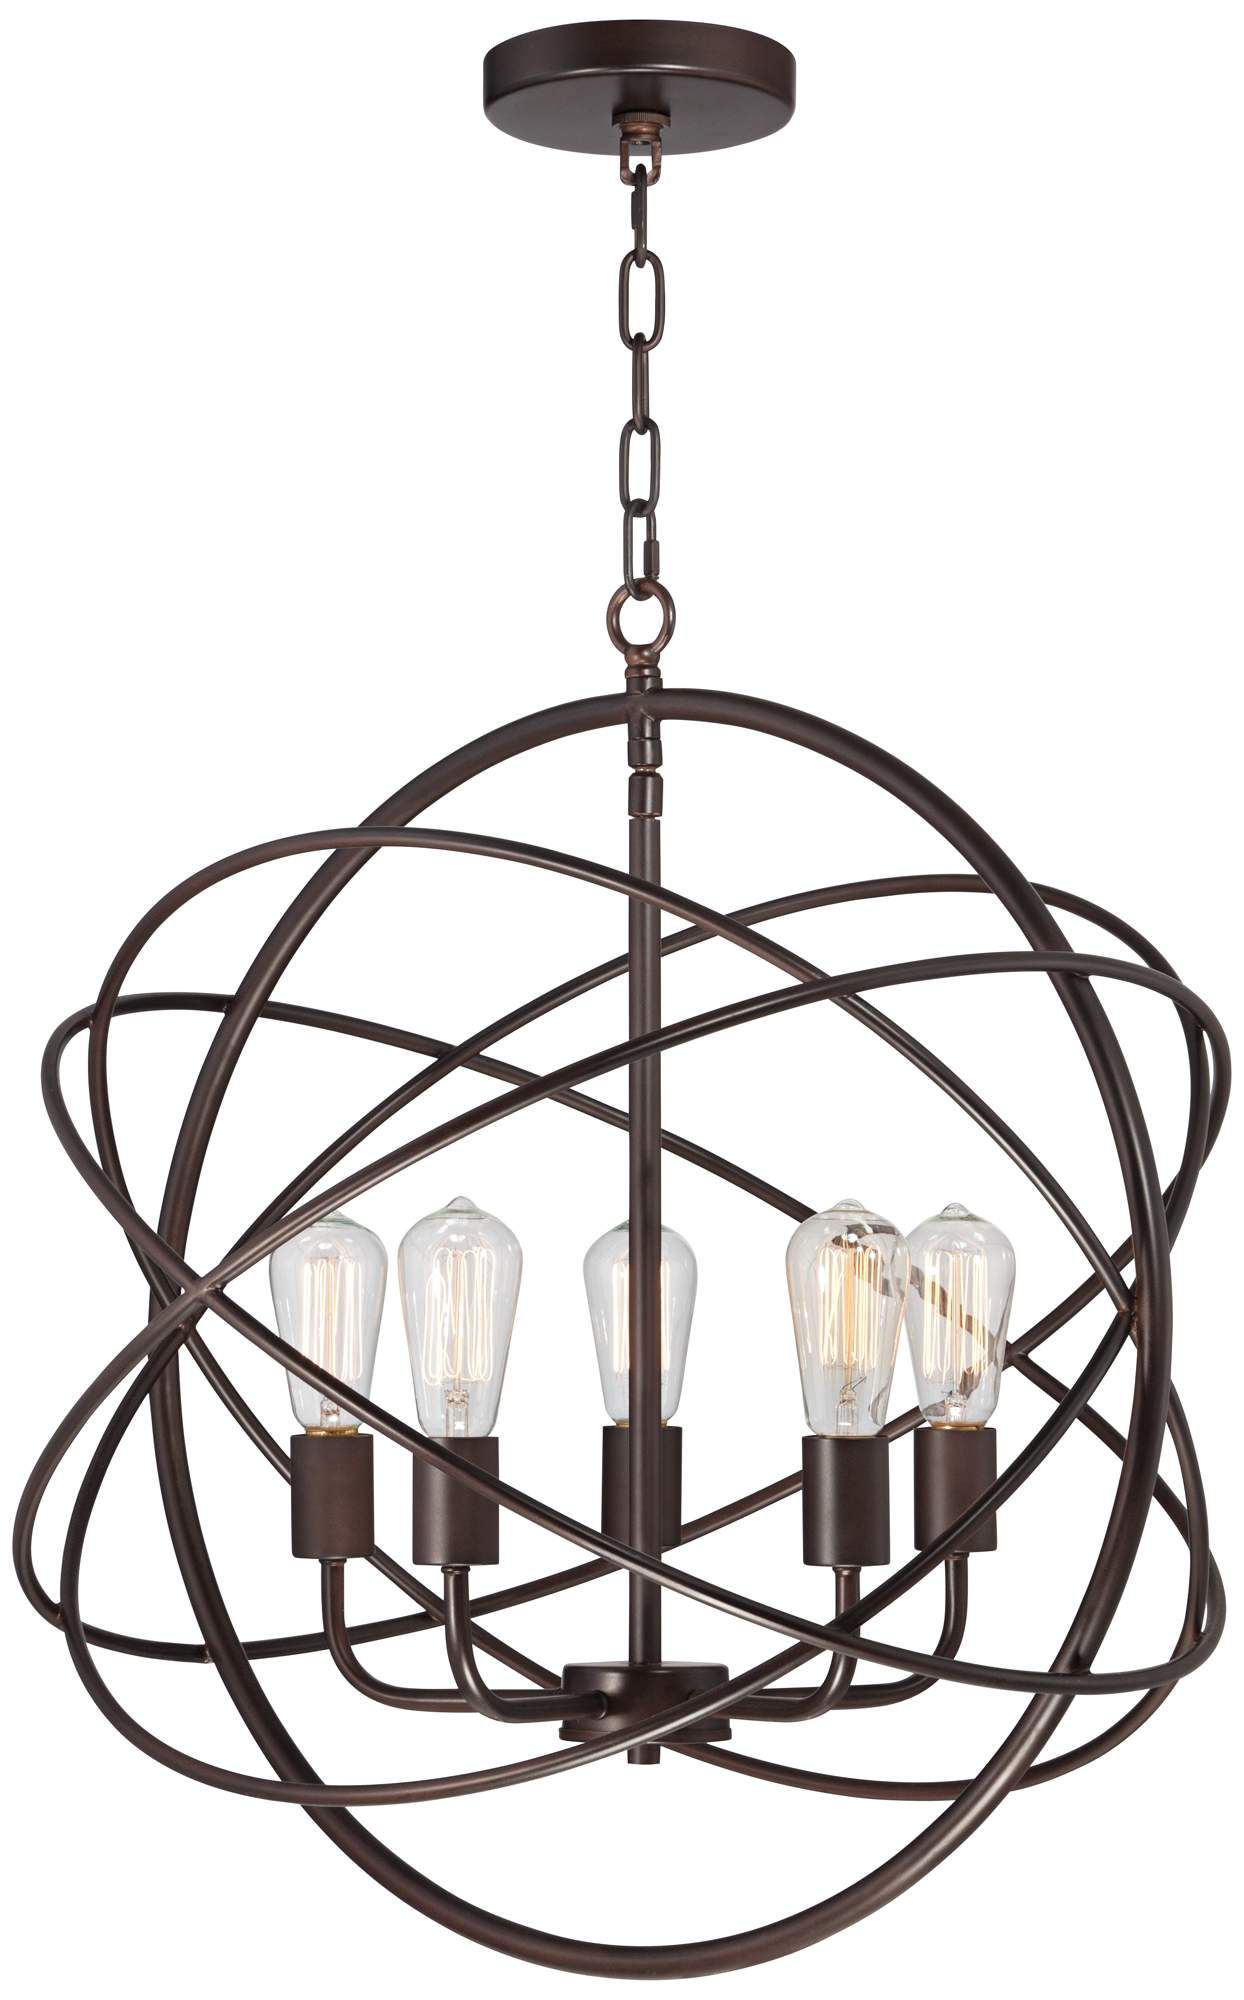 "Ellery 24 3/4"" Wide 5 Light Bronze Sphere Foyer Pendant In Throughout Kierra 4 Light Unique / Statement Chandeliers (Photo 9 of 30)"